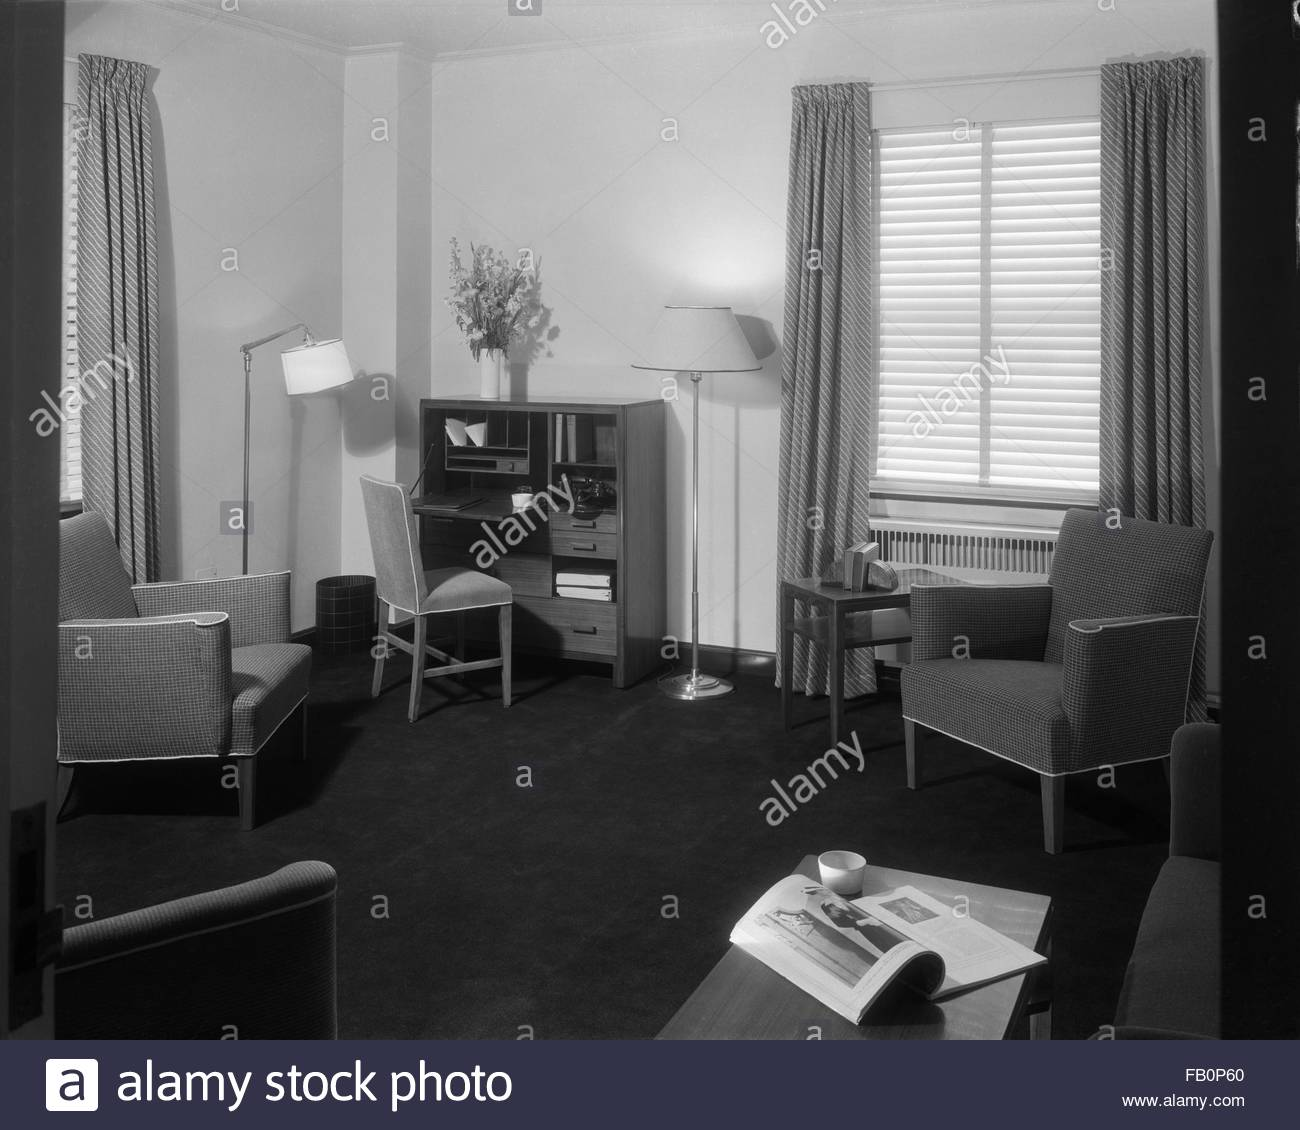 Stevens Hotel rooms in Chicago (Ill.), 1935 Apr.- May. Interior, room with desk, chairs and lamps. - Stock Image